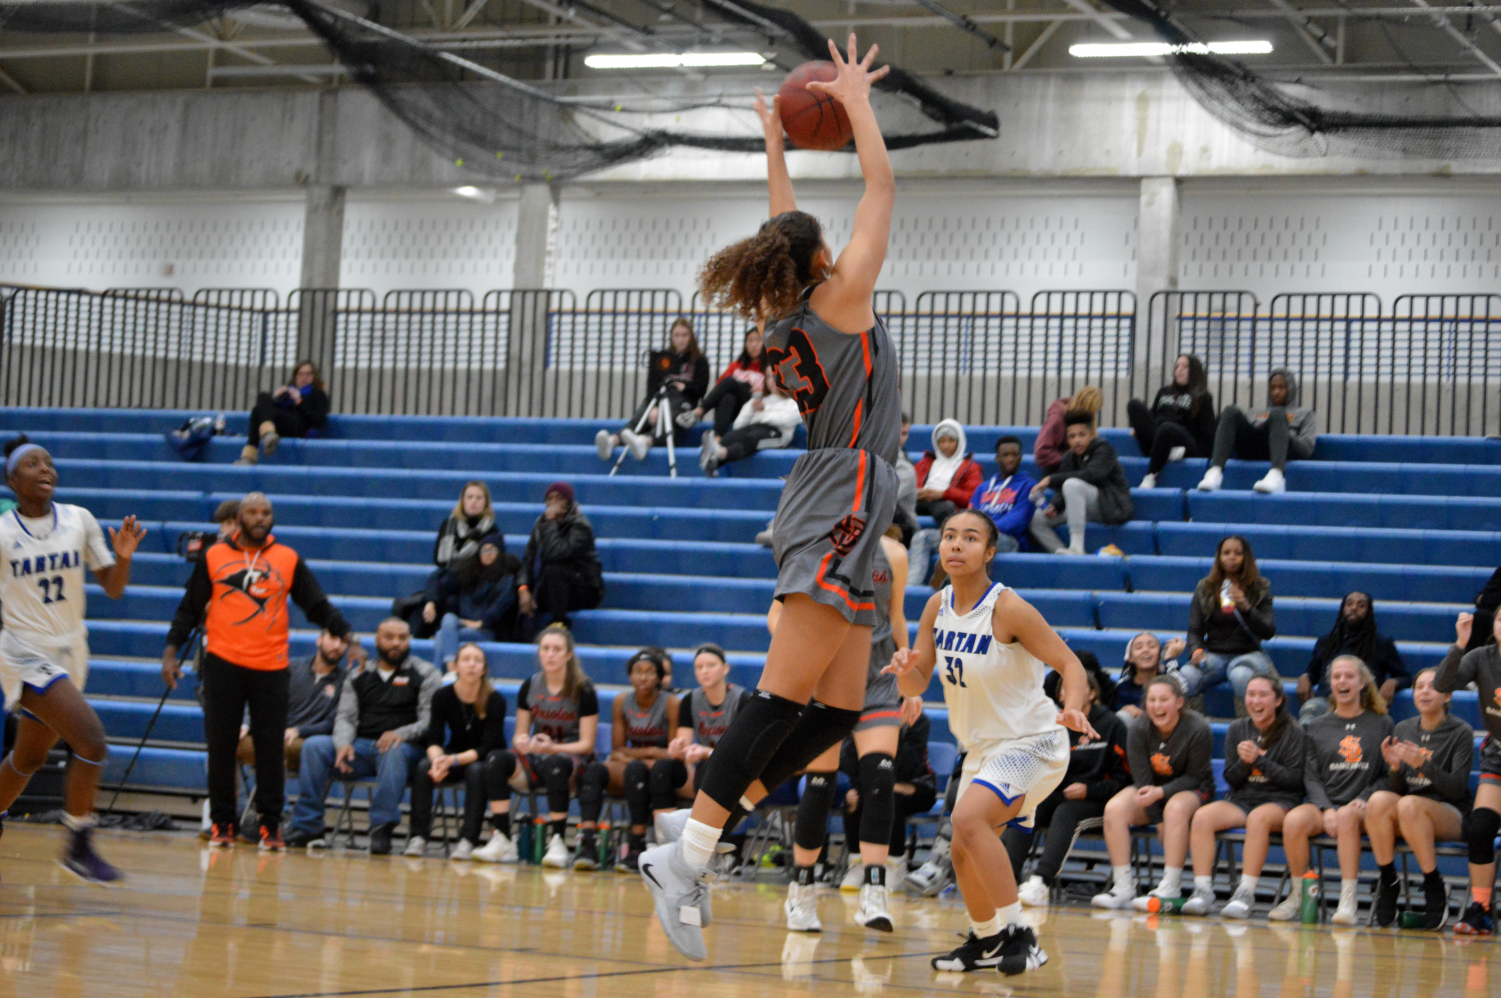 Sophomore Reagan Alexander catches pass over Tartan defender. Parks second victory of the season was during the Breakdown Tip-off Classic tournament.